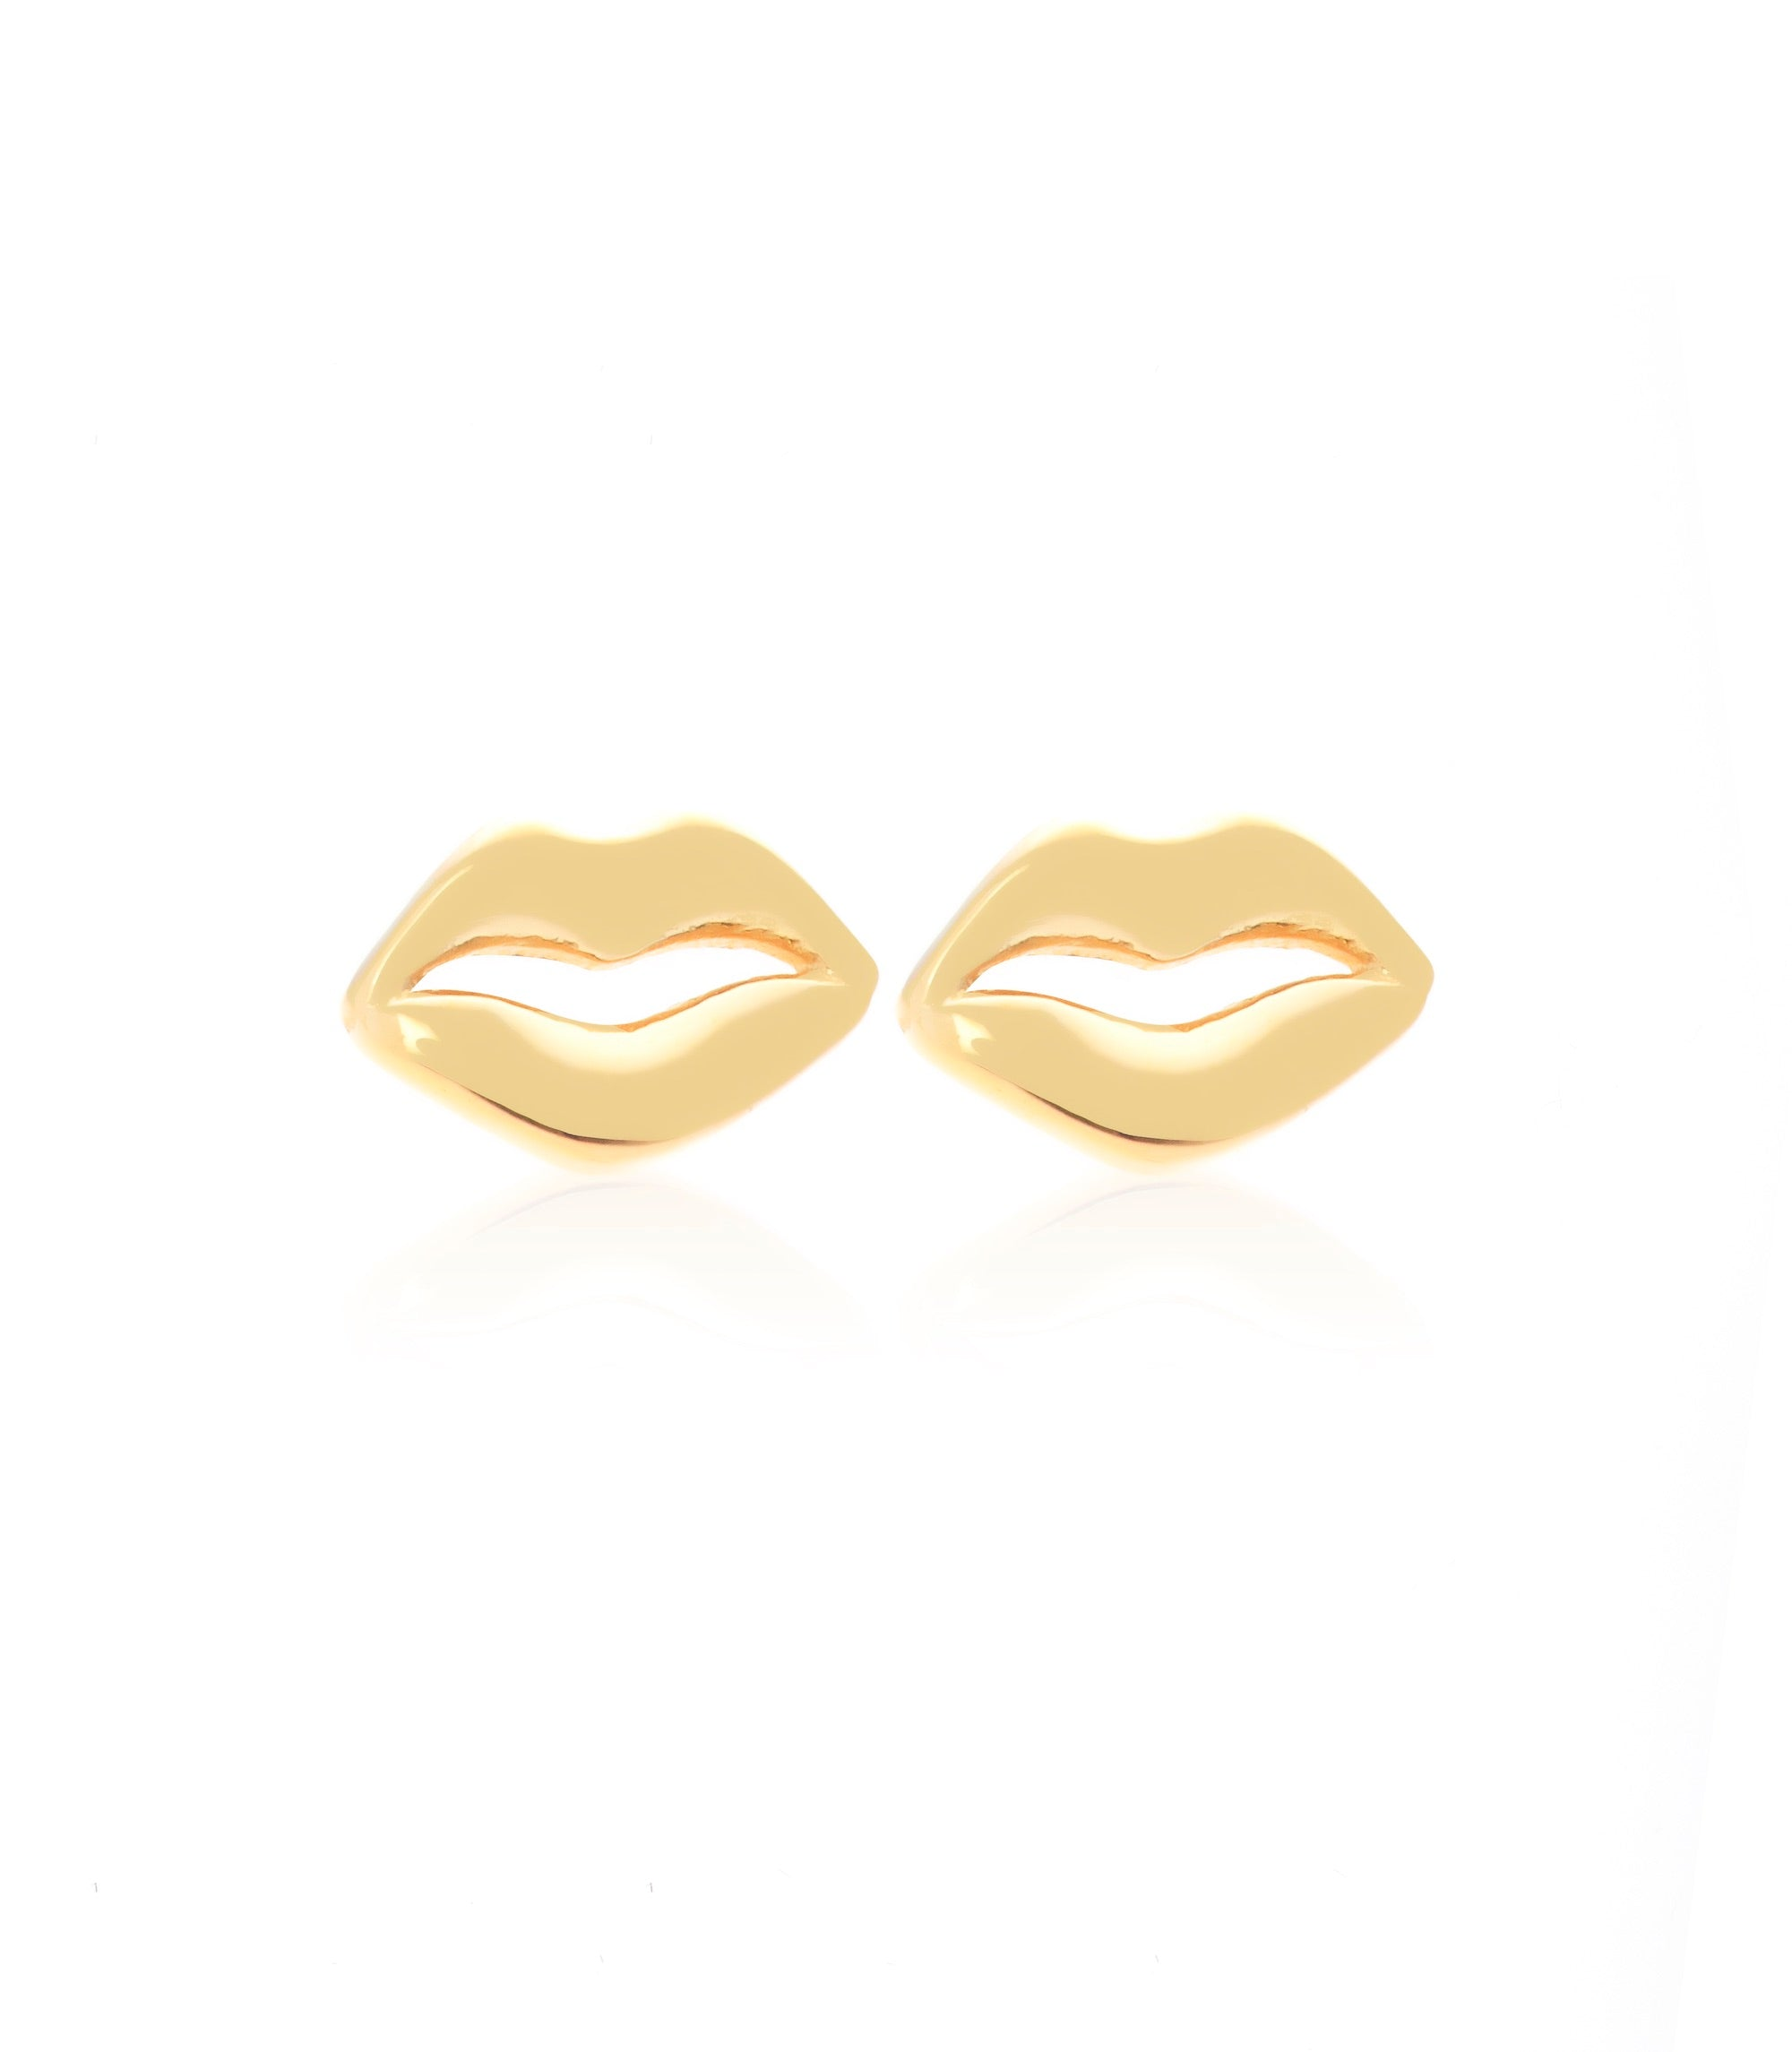 Silk & Steel Jewellery Superfine Gold Kiss Me Sterling Silver Stud Earrings